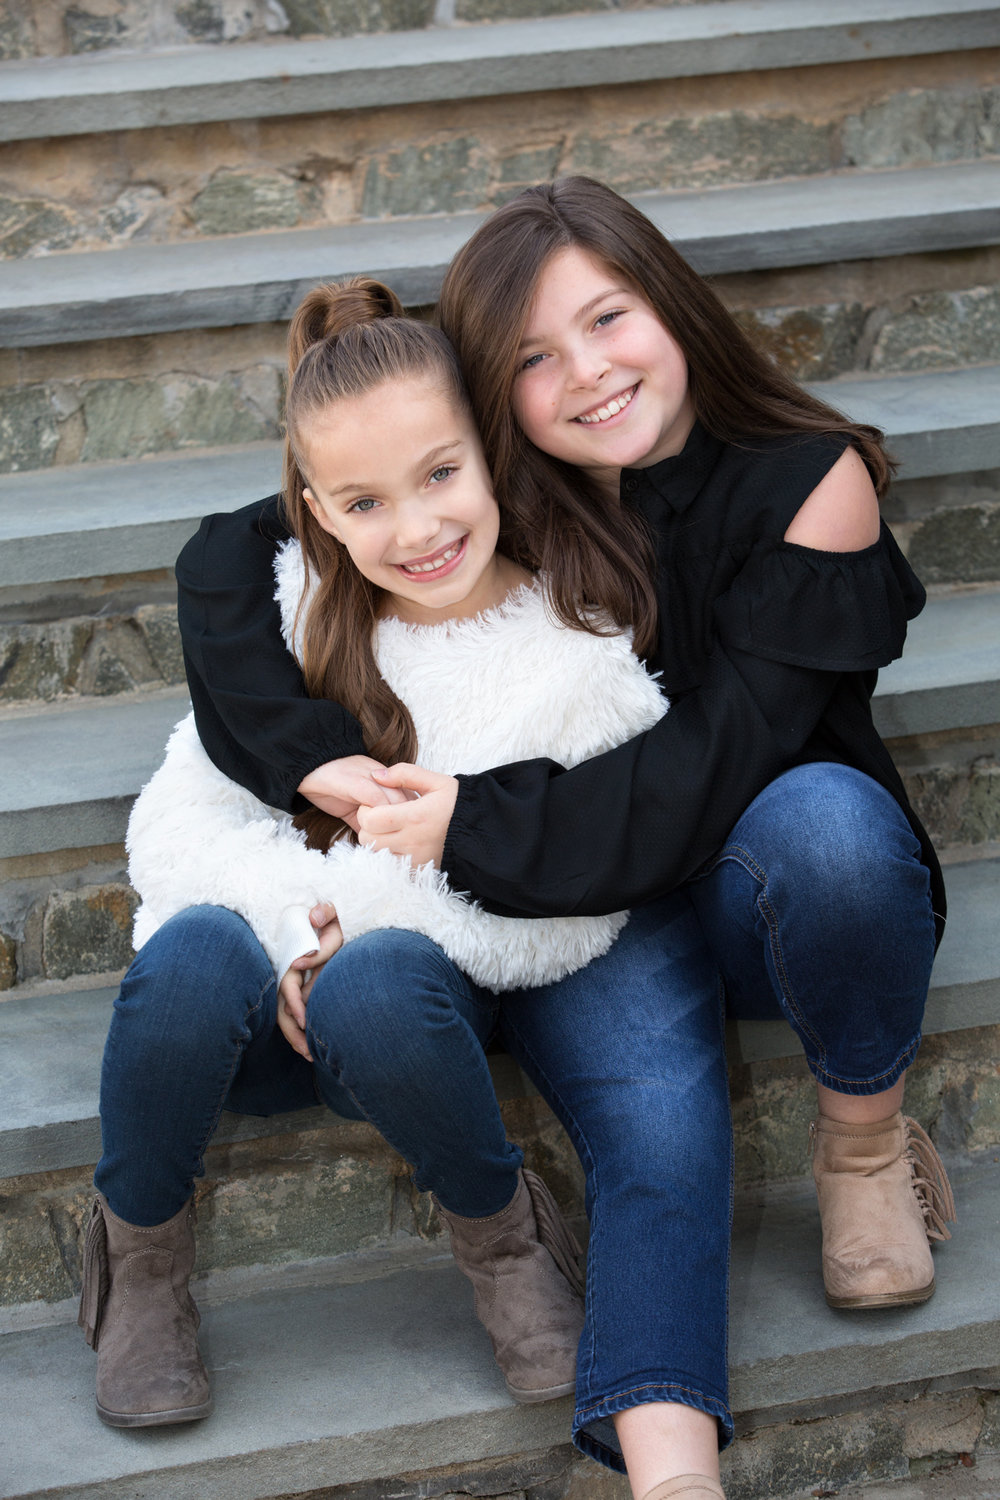 ny-kids-photographer-long-island-fun-shoot.jpg